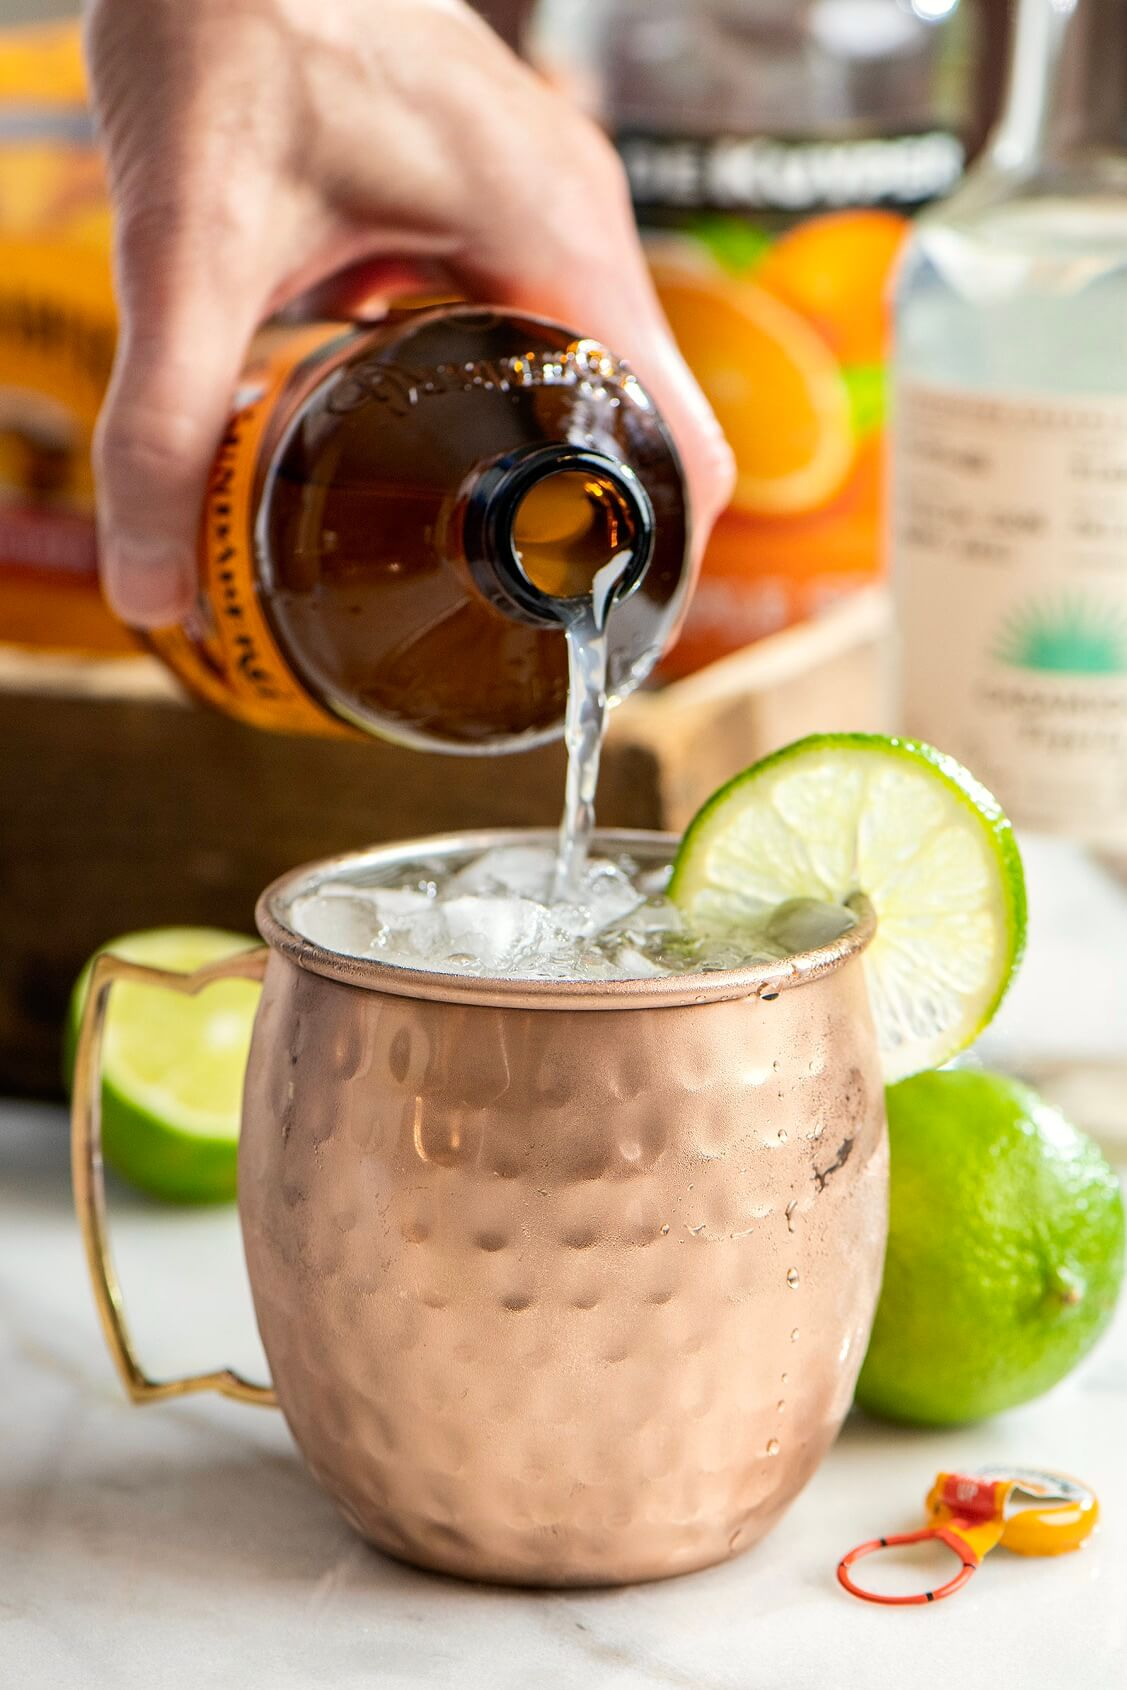 A cross between the classic Moscow mule and the much-loved Margarita, this refreshing cocktail may just become the drink of the season!